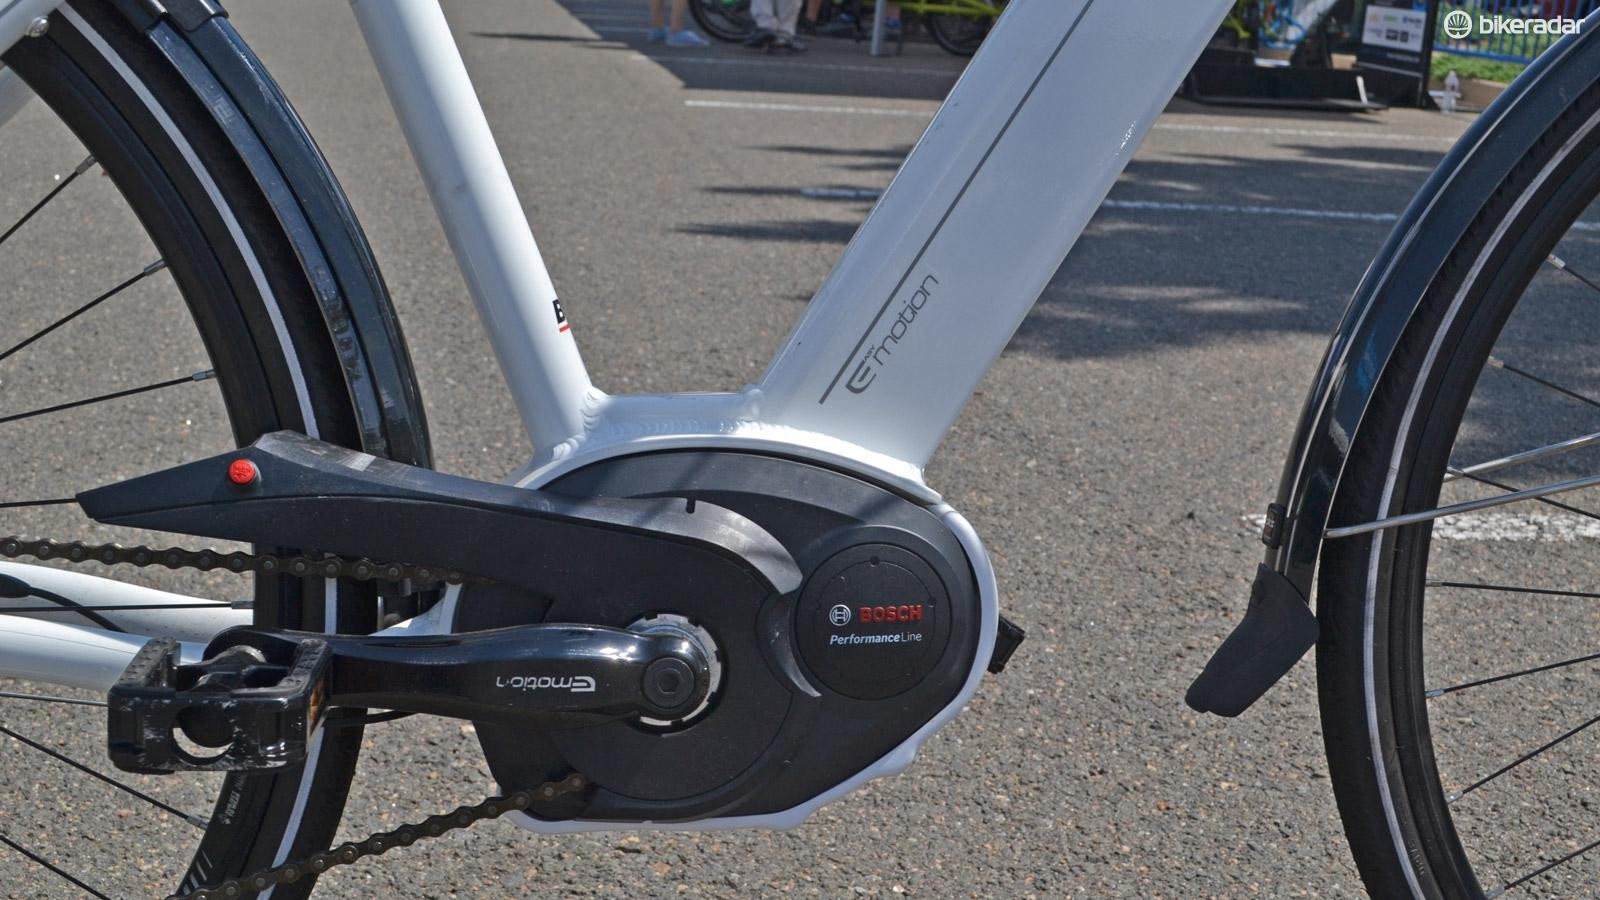 Bosch is one of the most commonly specced motors on urban and hybrid bikes